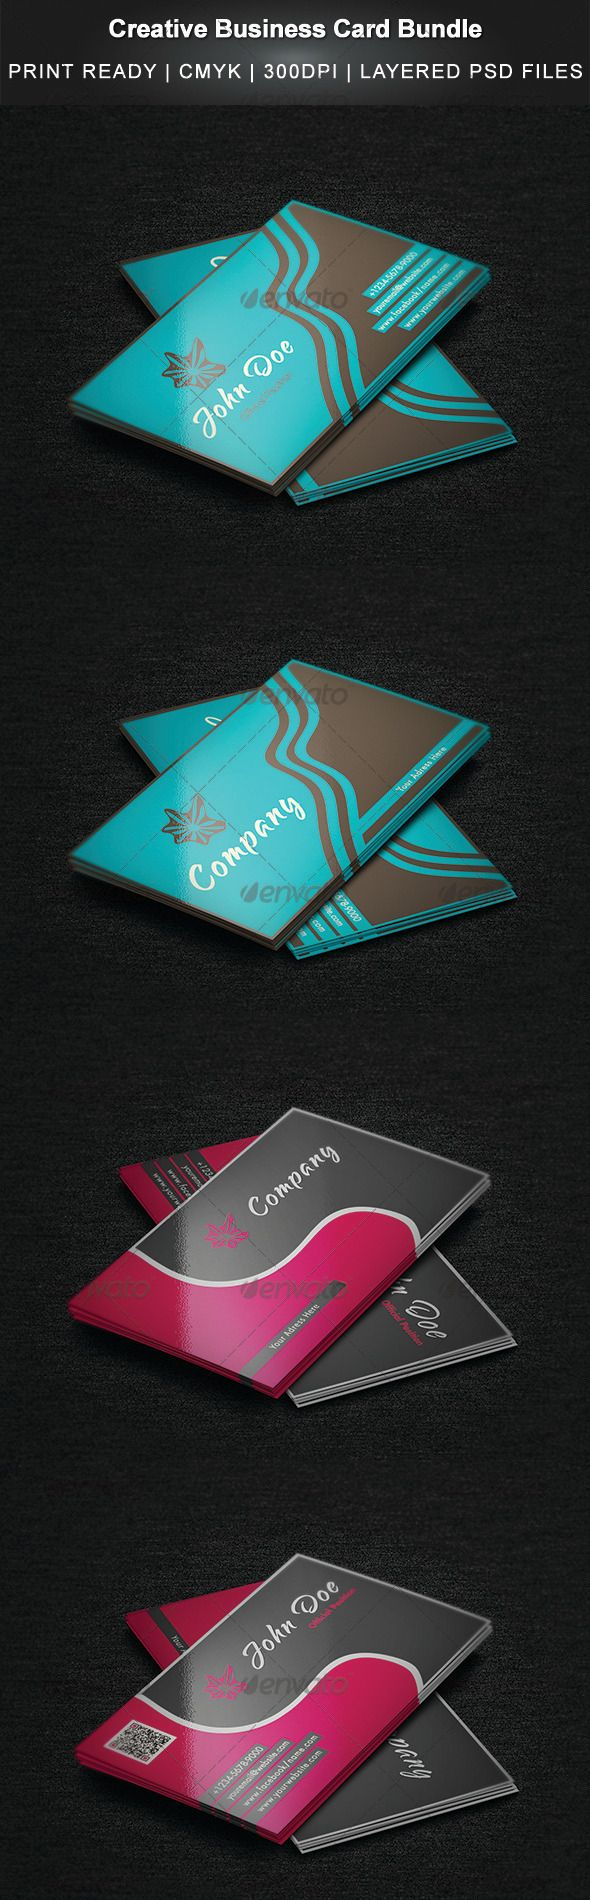 90 best print templates images on pinterest print templates flyer 90 best print templates images on pinterest print templates flyer design and font logo reheart Gallery